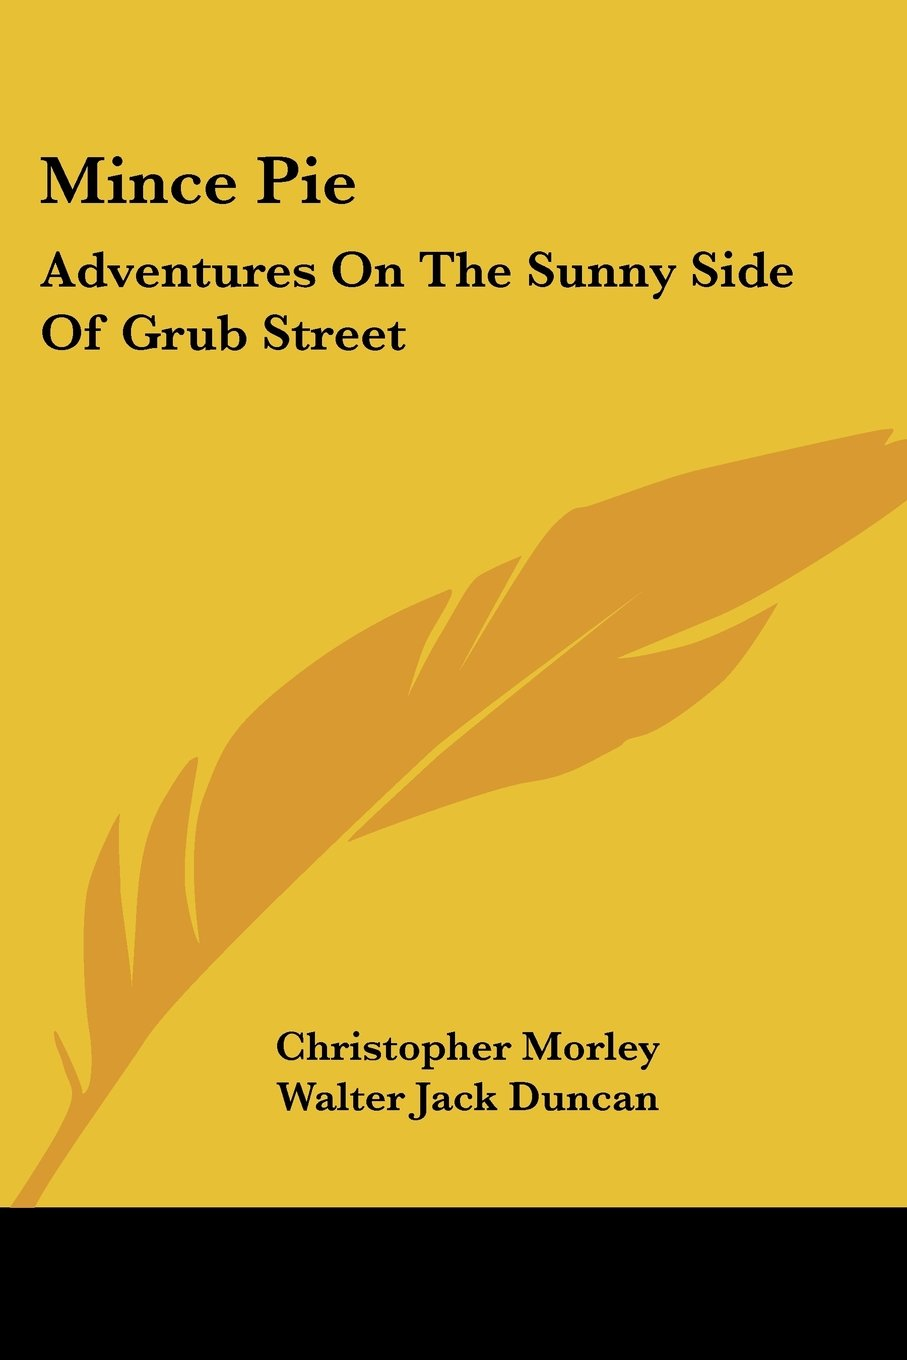 Download Mince Pie: Adventures On The Sunny Side Of Grub Street ebook